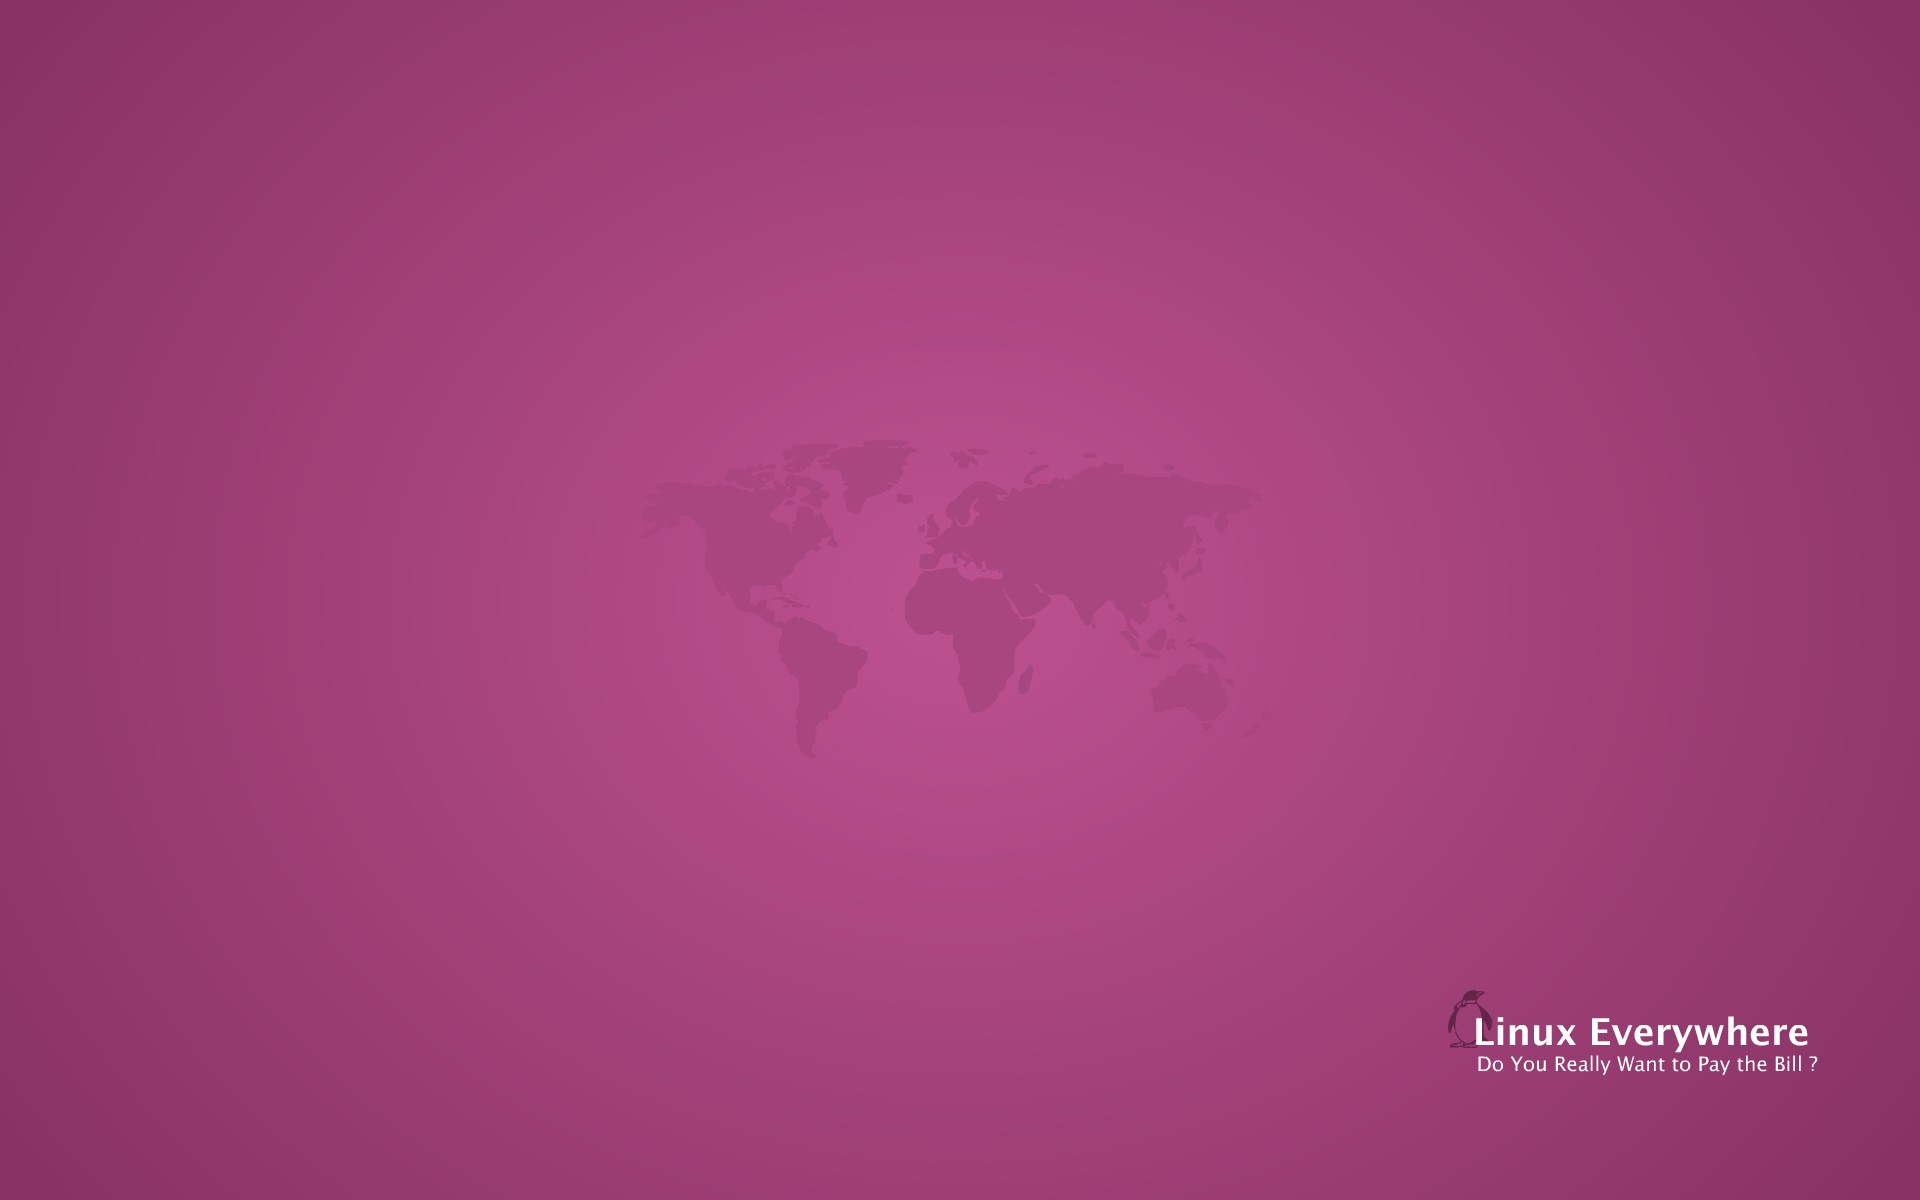 Pink linux world map wallpaper allwallpaper 10376 pc en pink linux world map wallpaper gumiabroncs Image collections